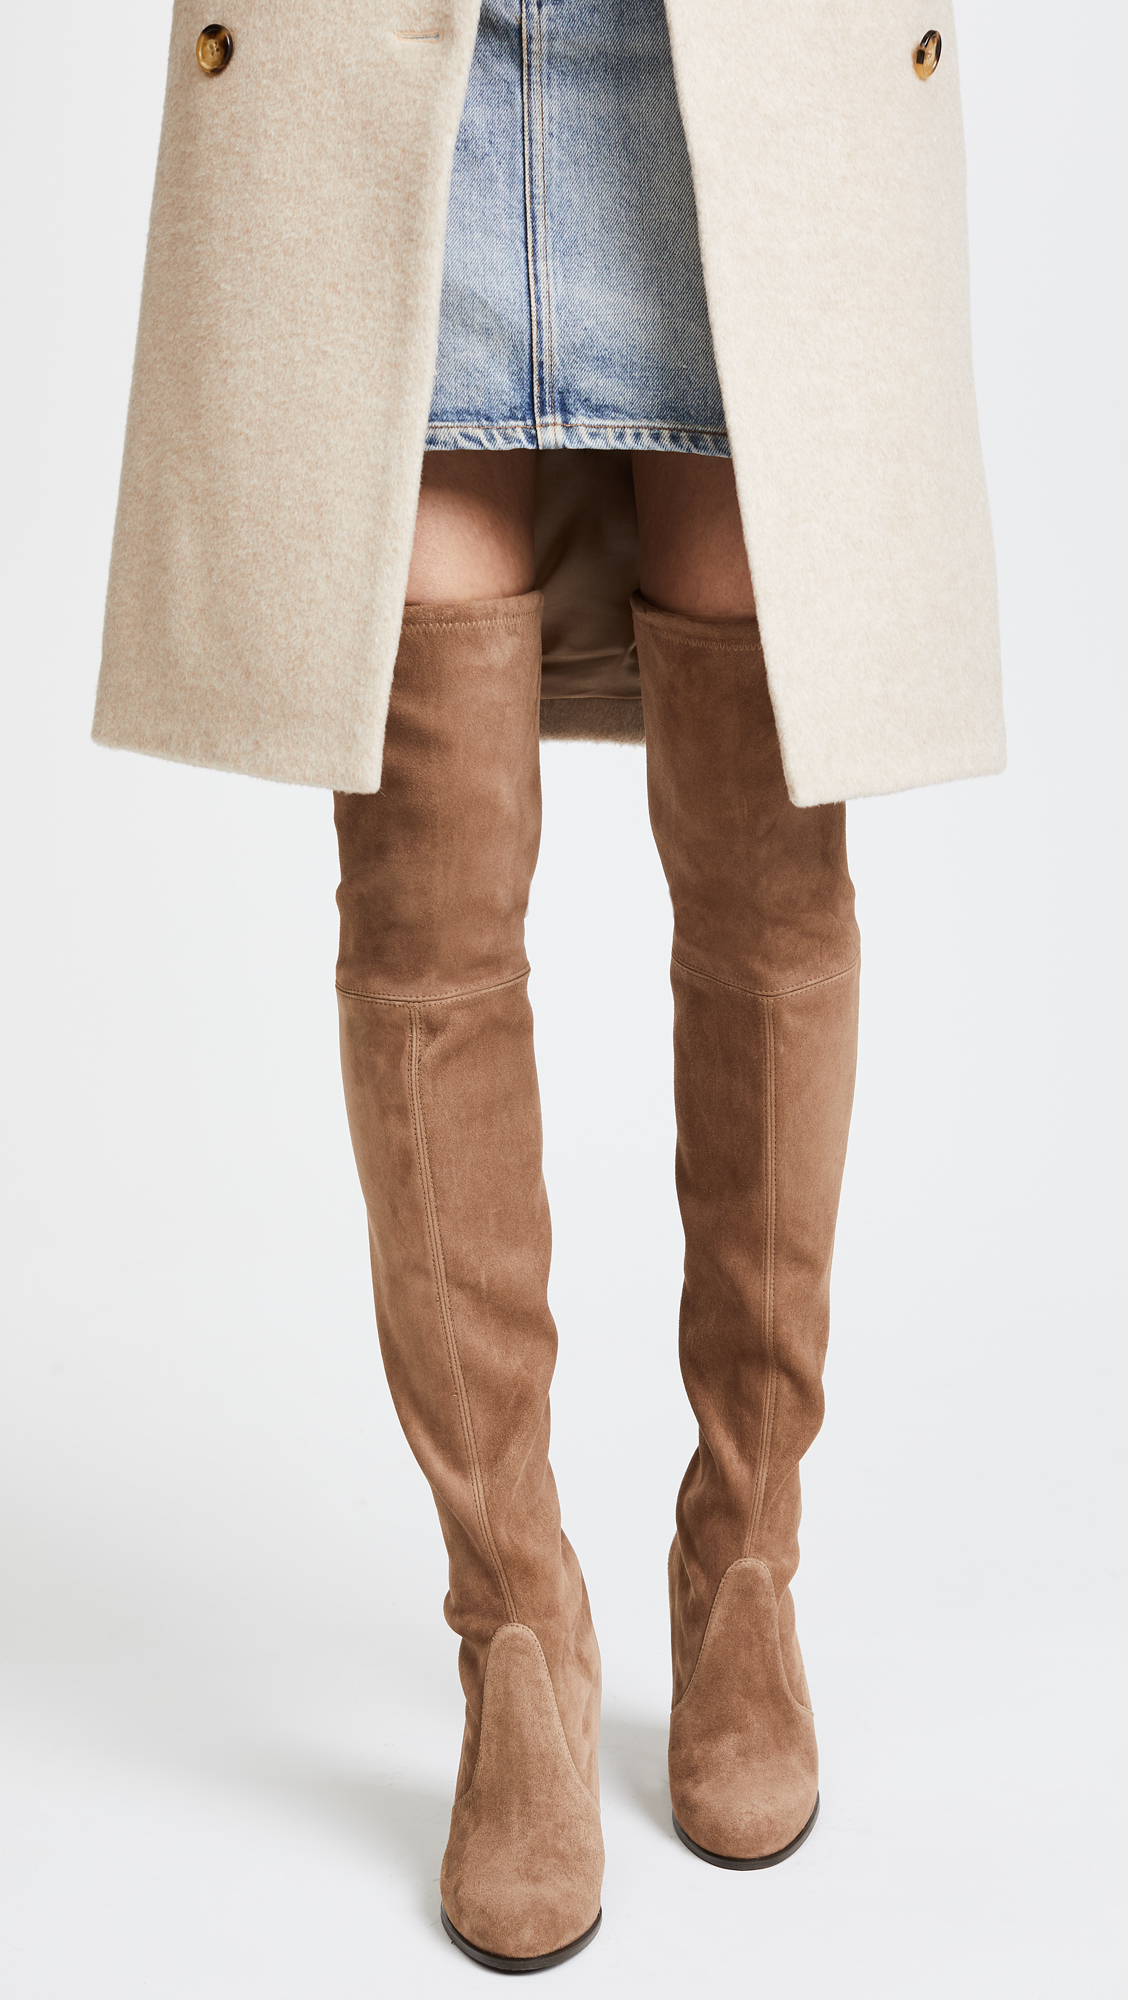 f4c7a043383 Stuart Weitzman Hiline Over the Knee Boots